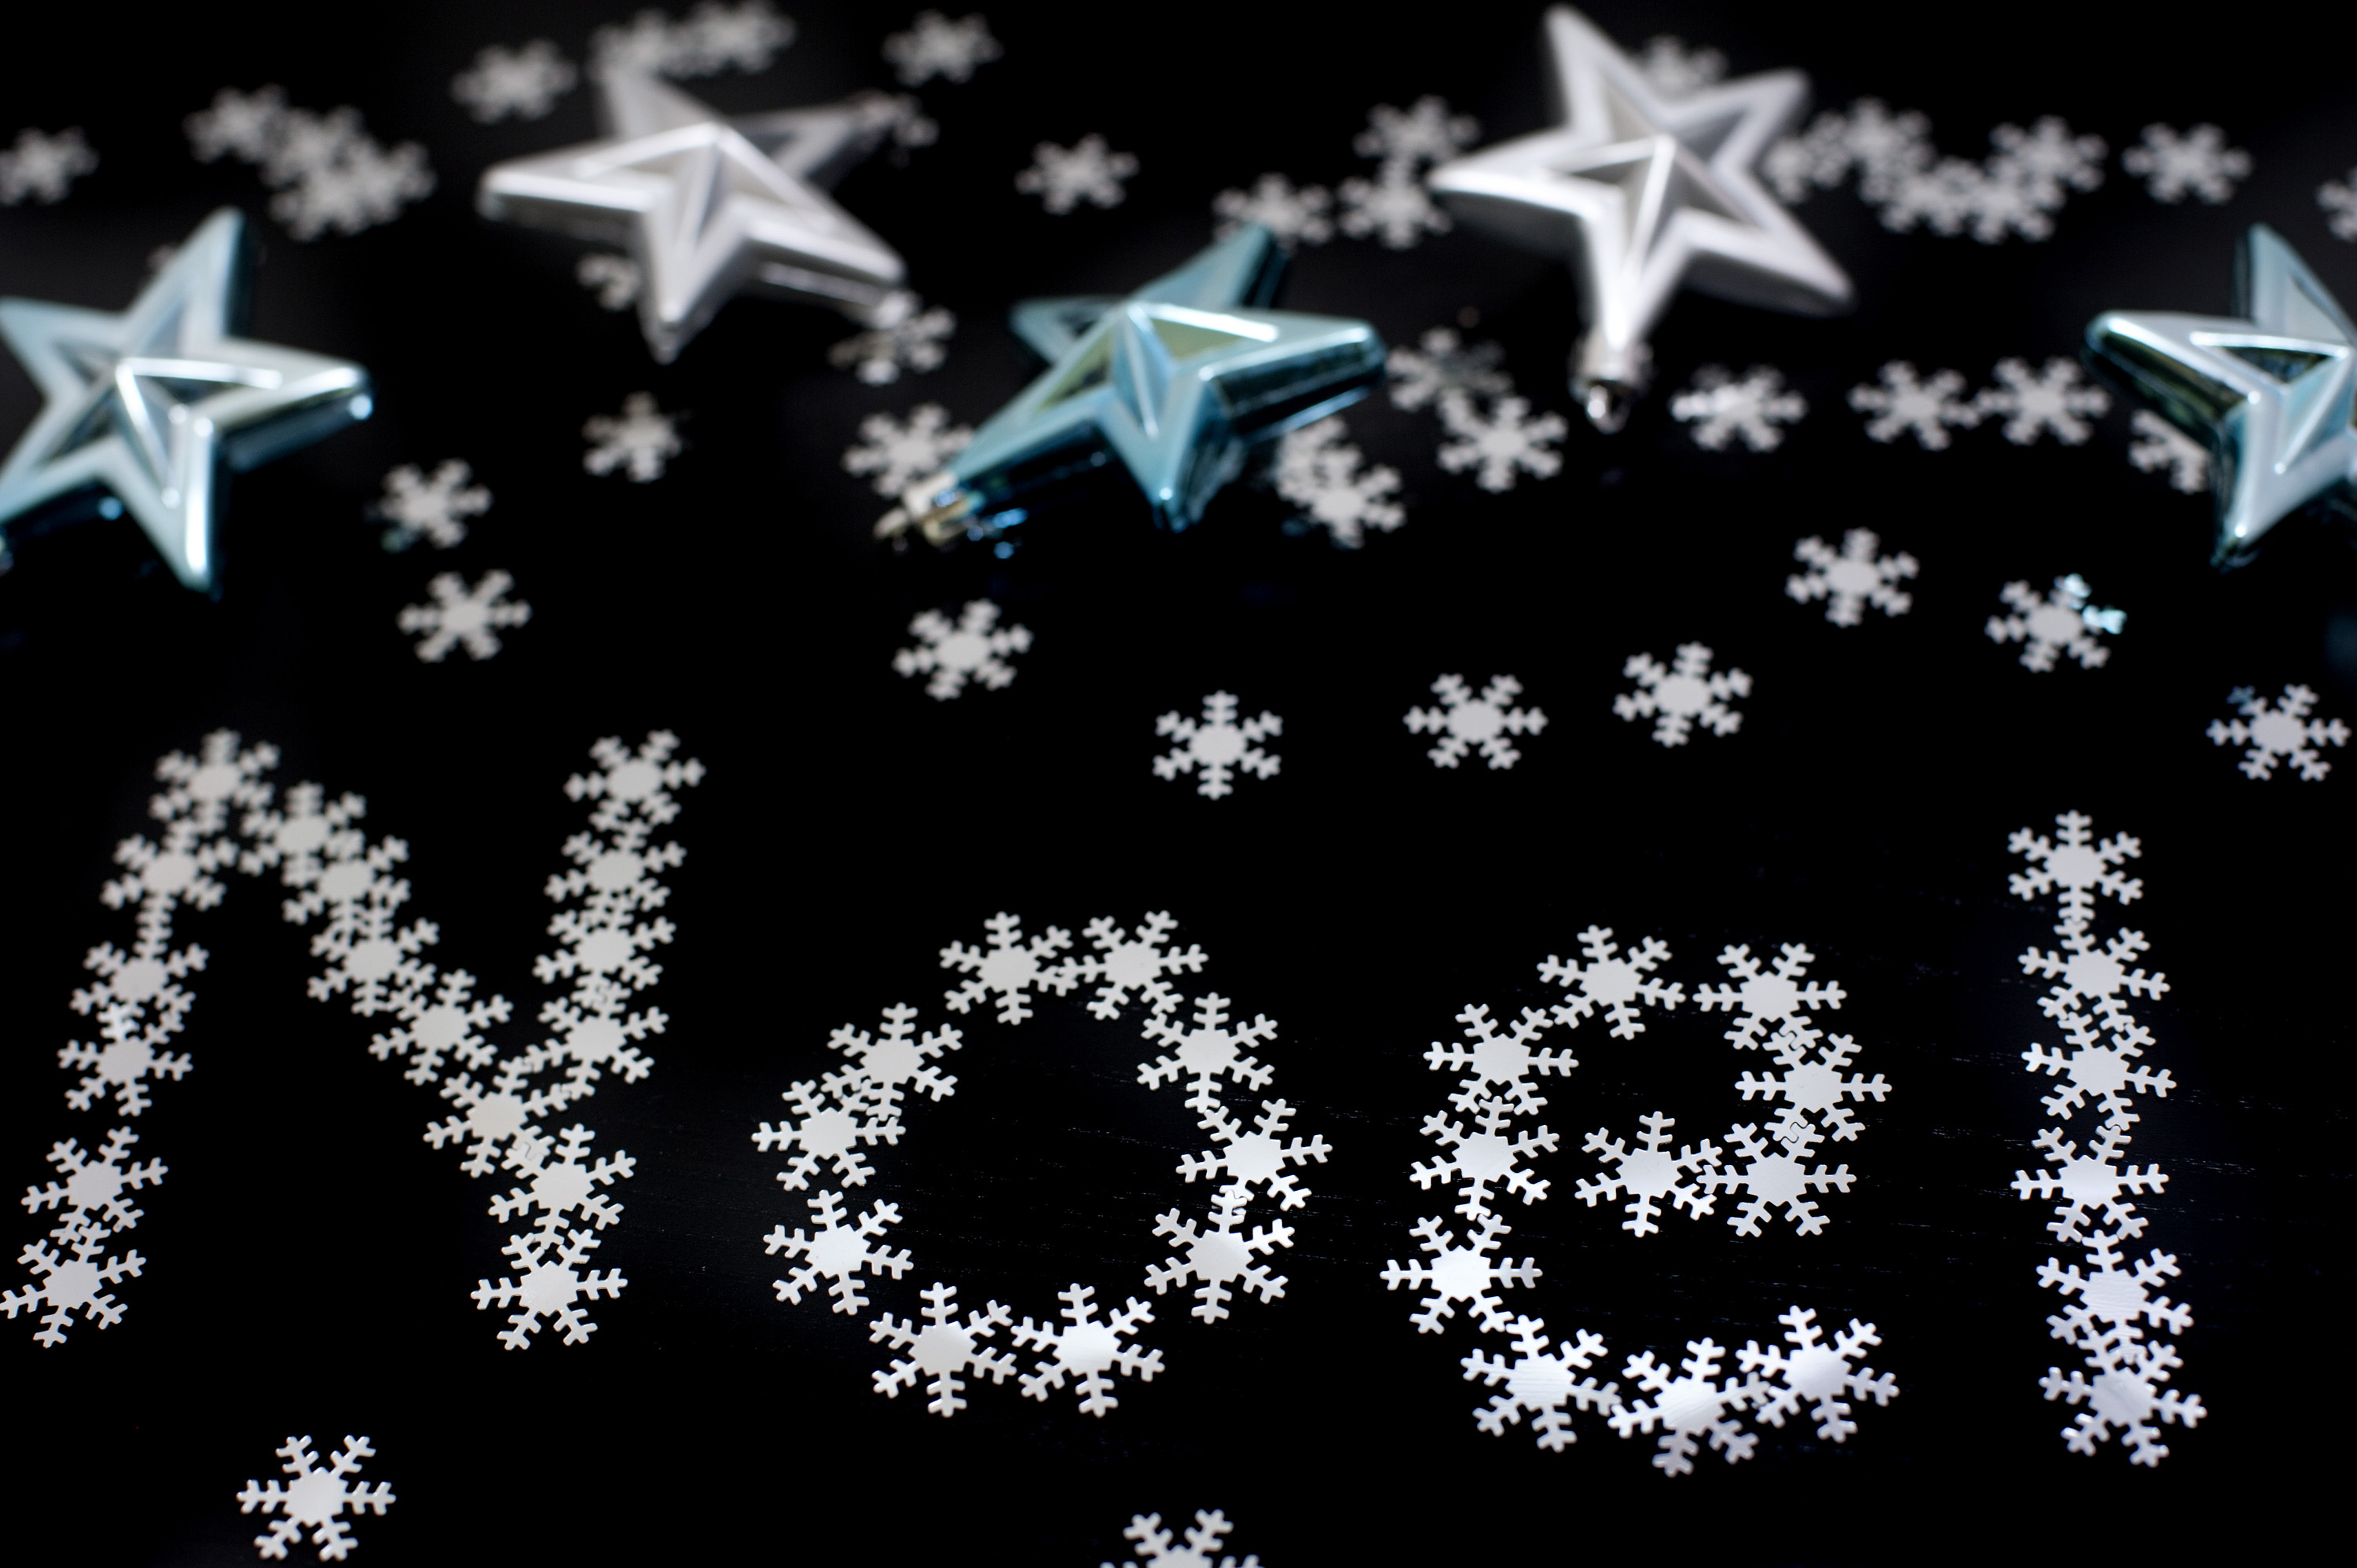 Noel greetings message with letters formed of tiny snowflakes on a dark background with Christmas stars